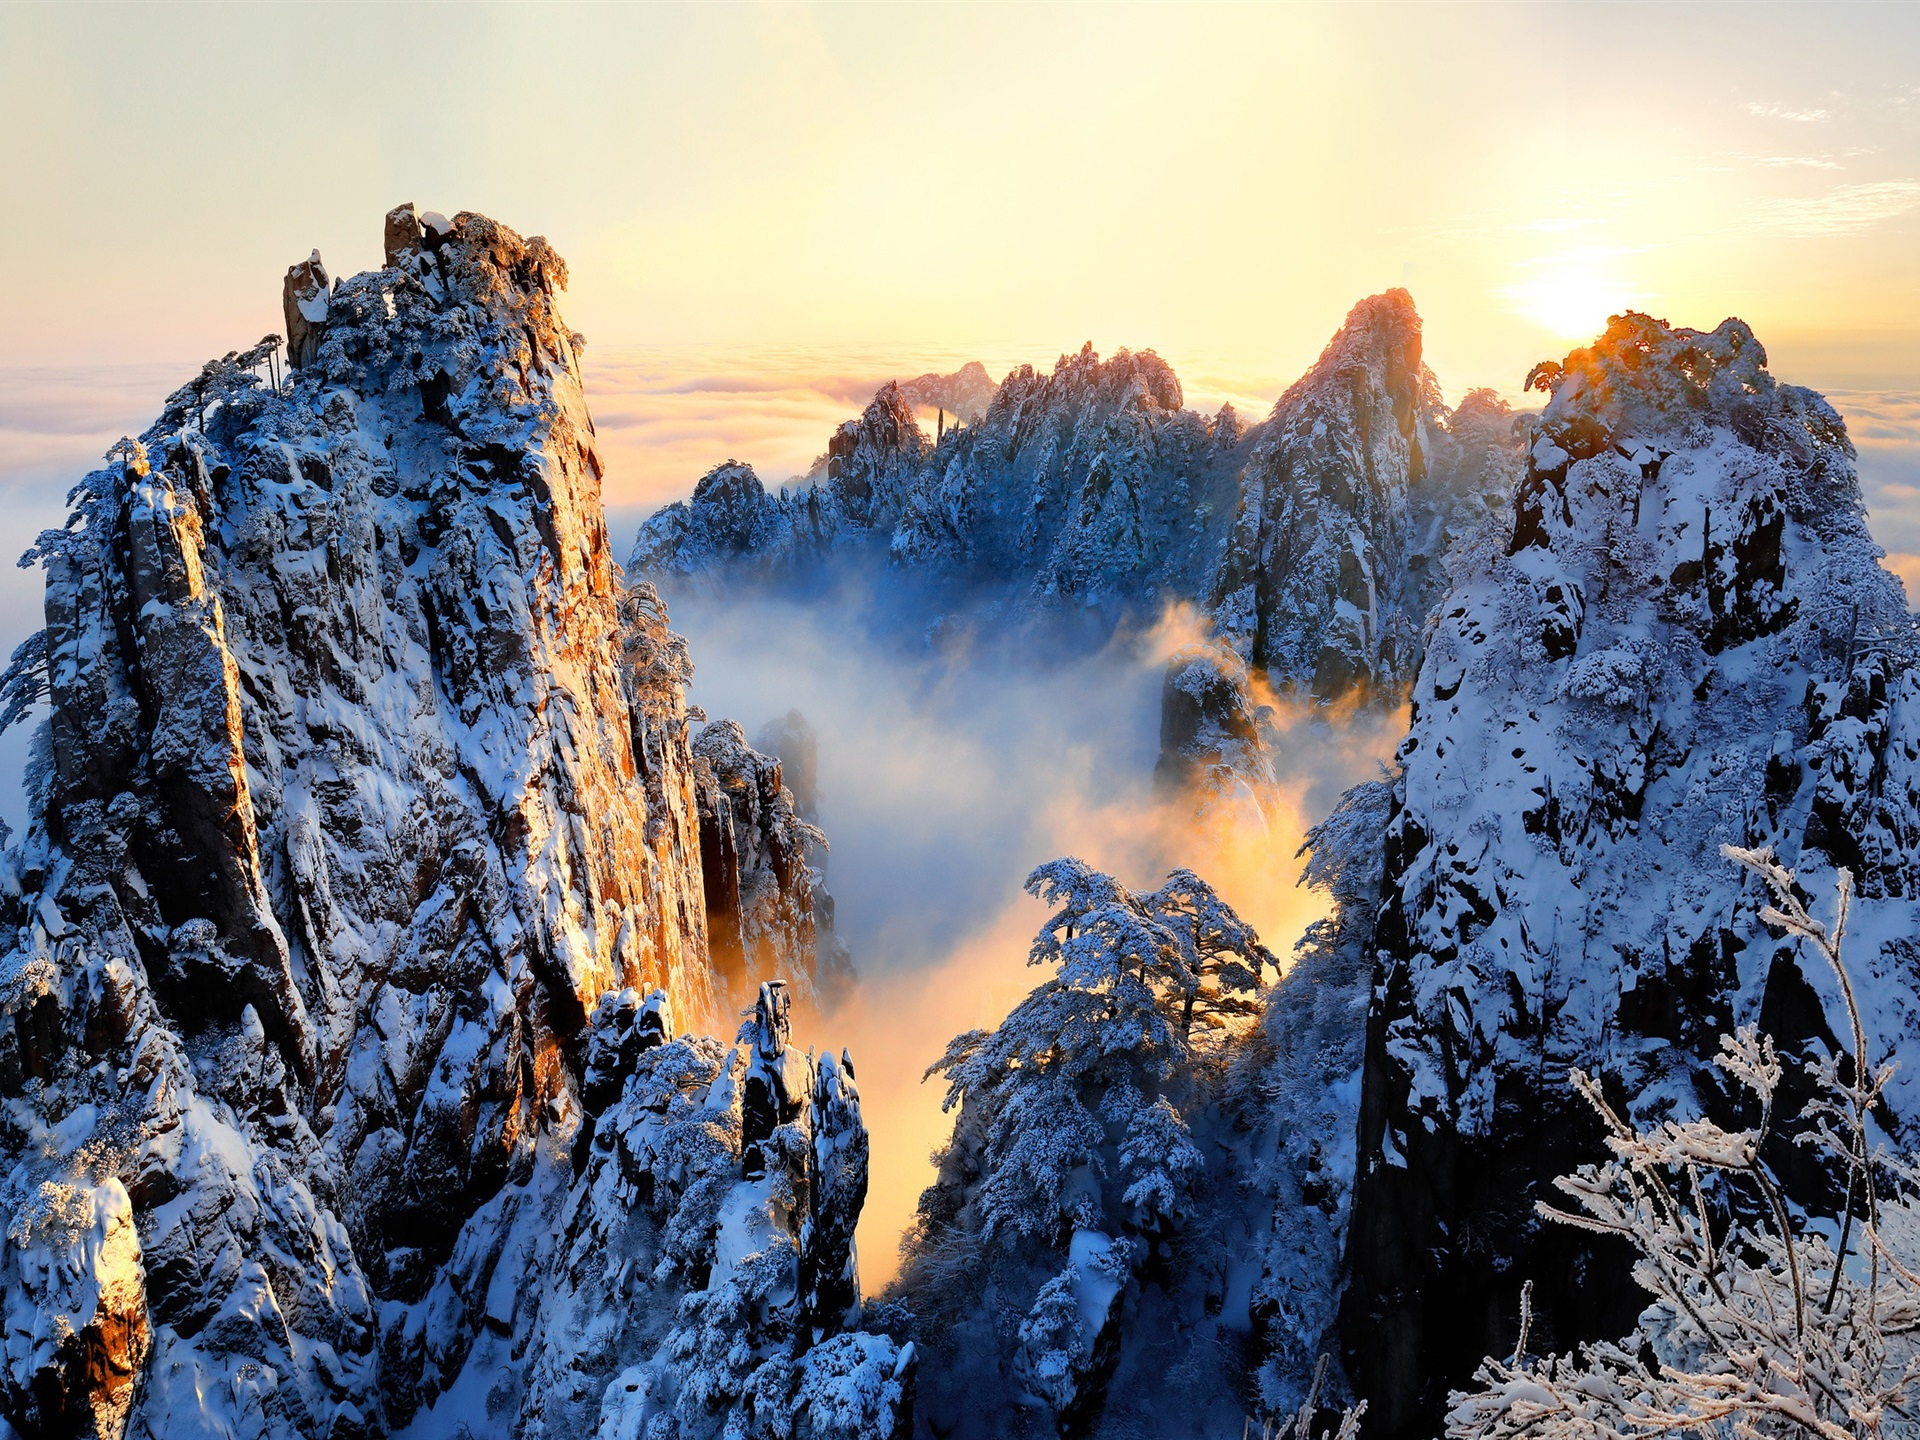 Wallpaper China Anhui Huangshan Beautiful Nature Landscape Snowy